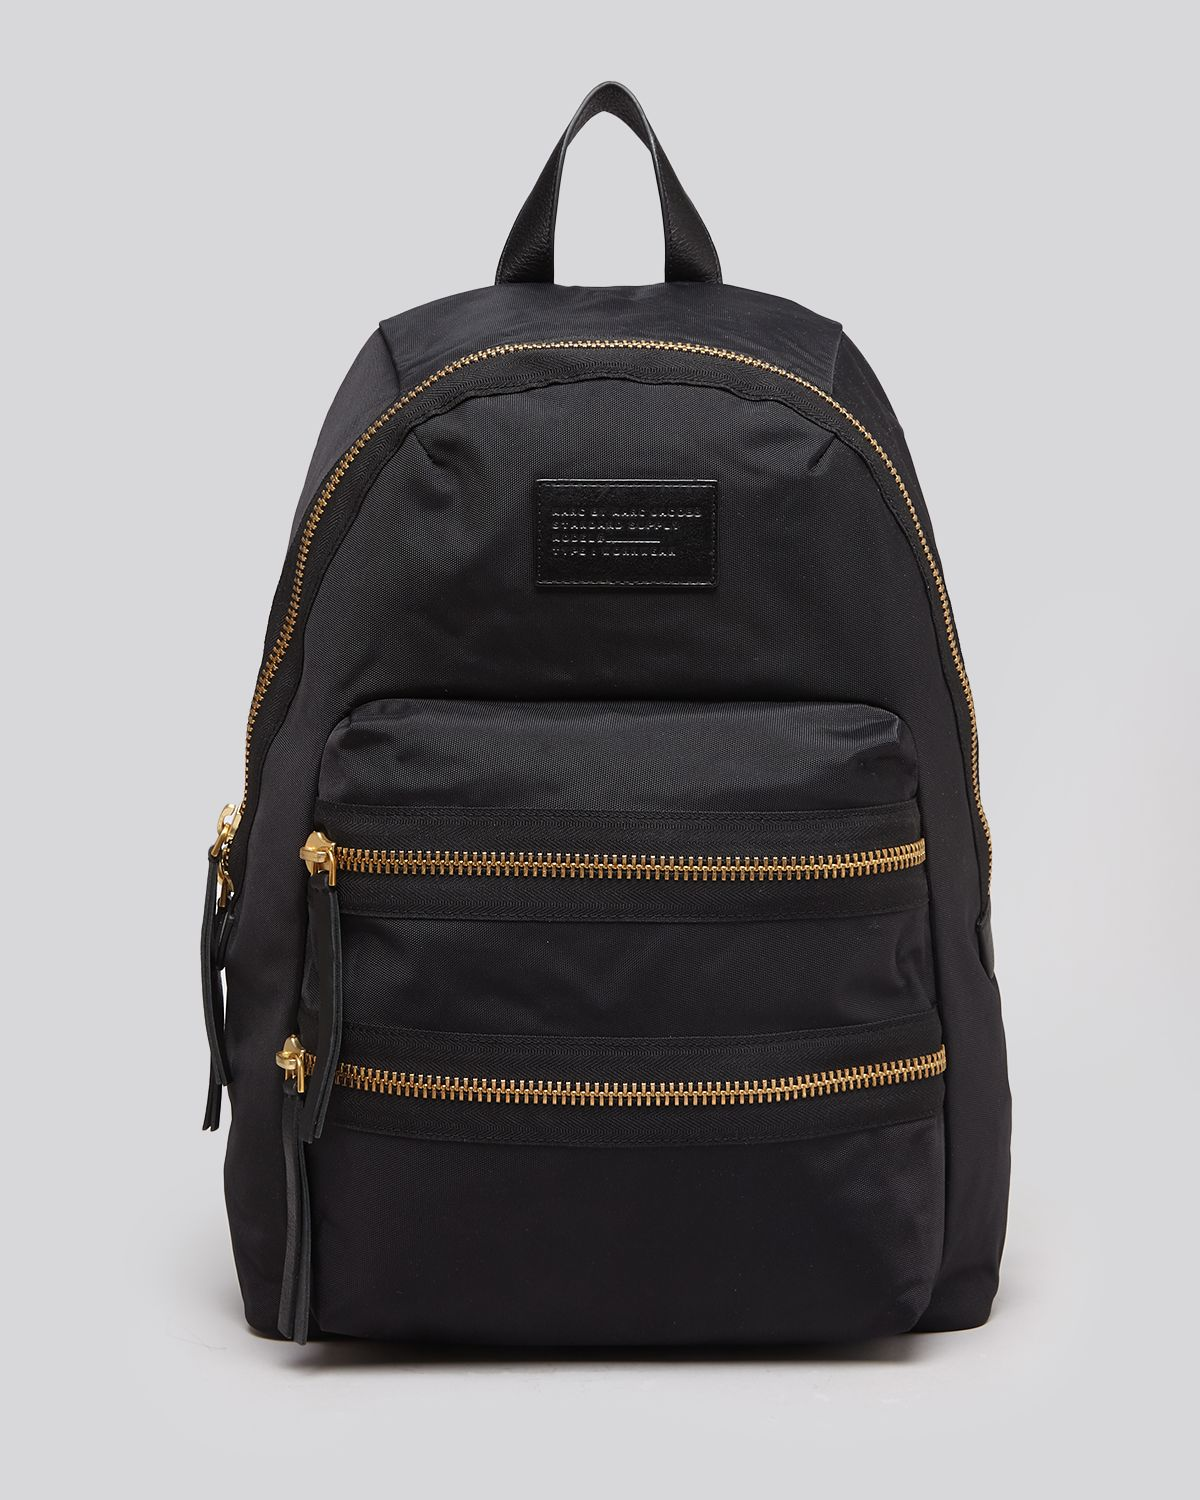 marc by marc jacobs backpack domo arigato packrat in black lyst. Black Bedroom Furniture Sets. Home Design Ideas